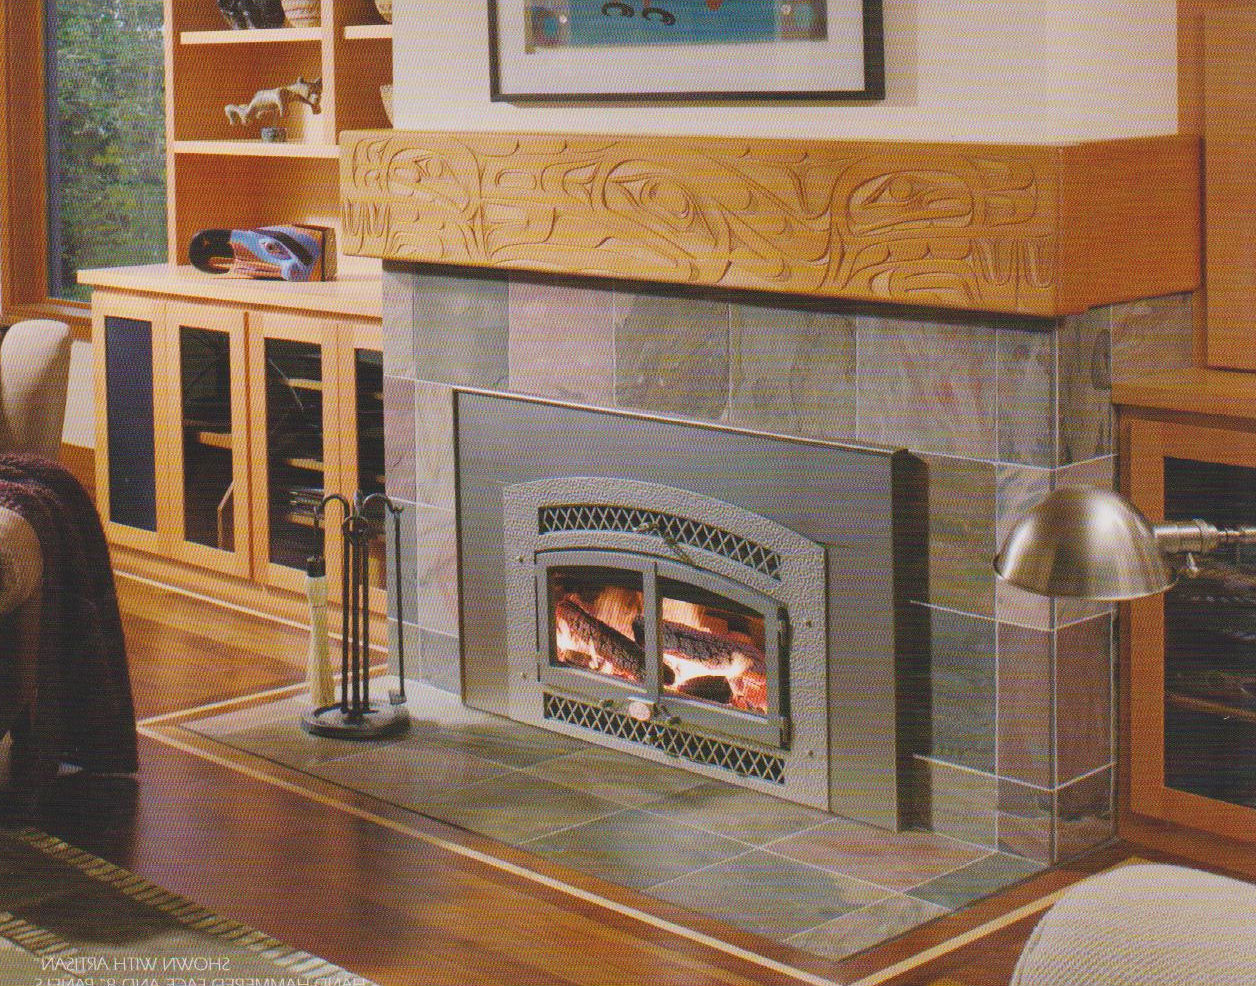 Fireplace insert wood burning on CustomFireplace Quality electric gas and wood fireplaces and